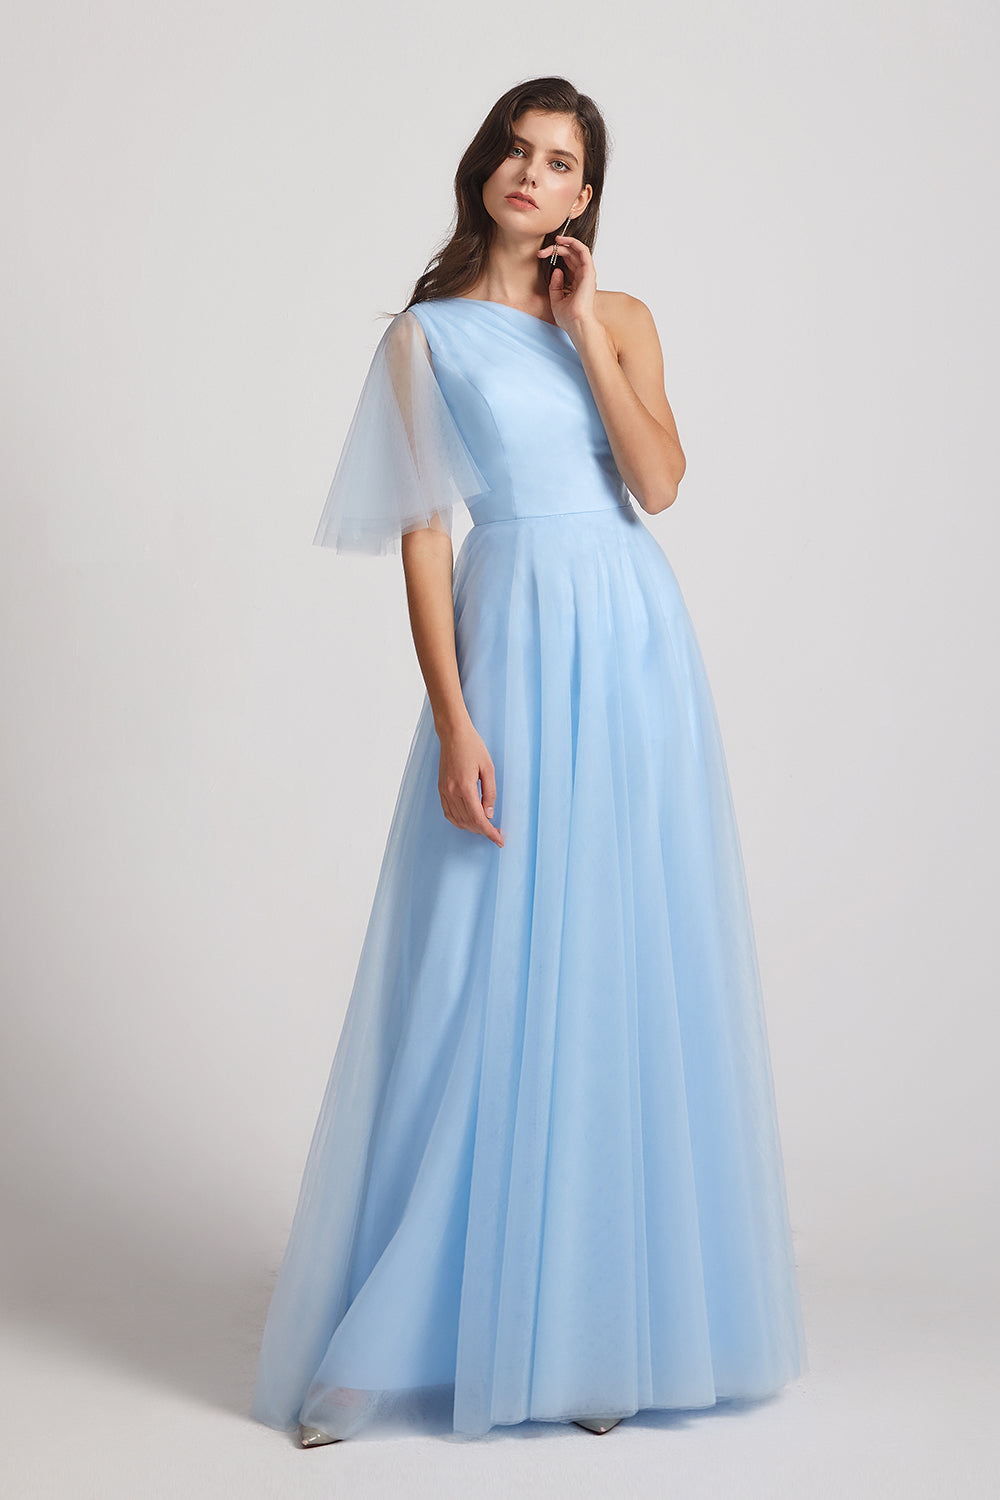 flutter sleeve tulle blue bridesmaid gown